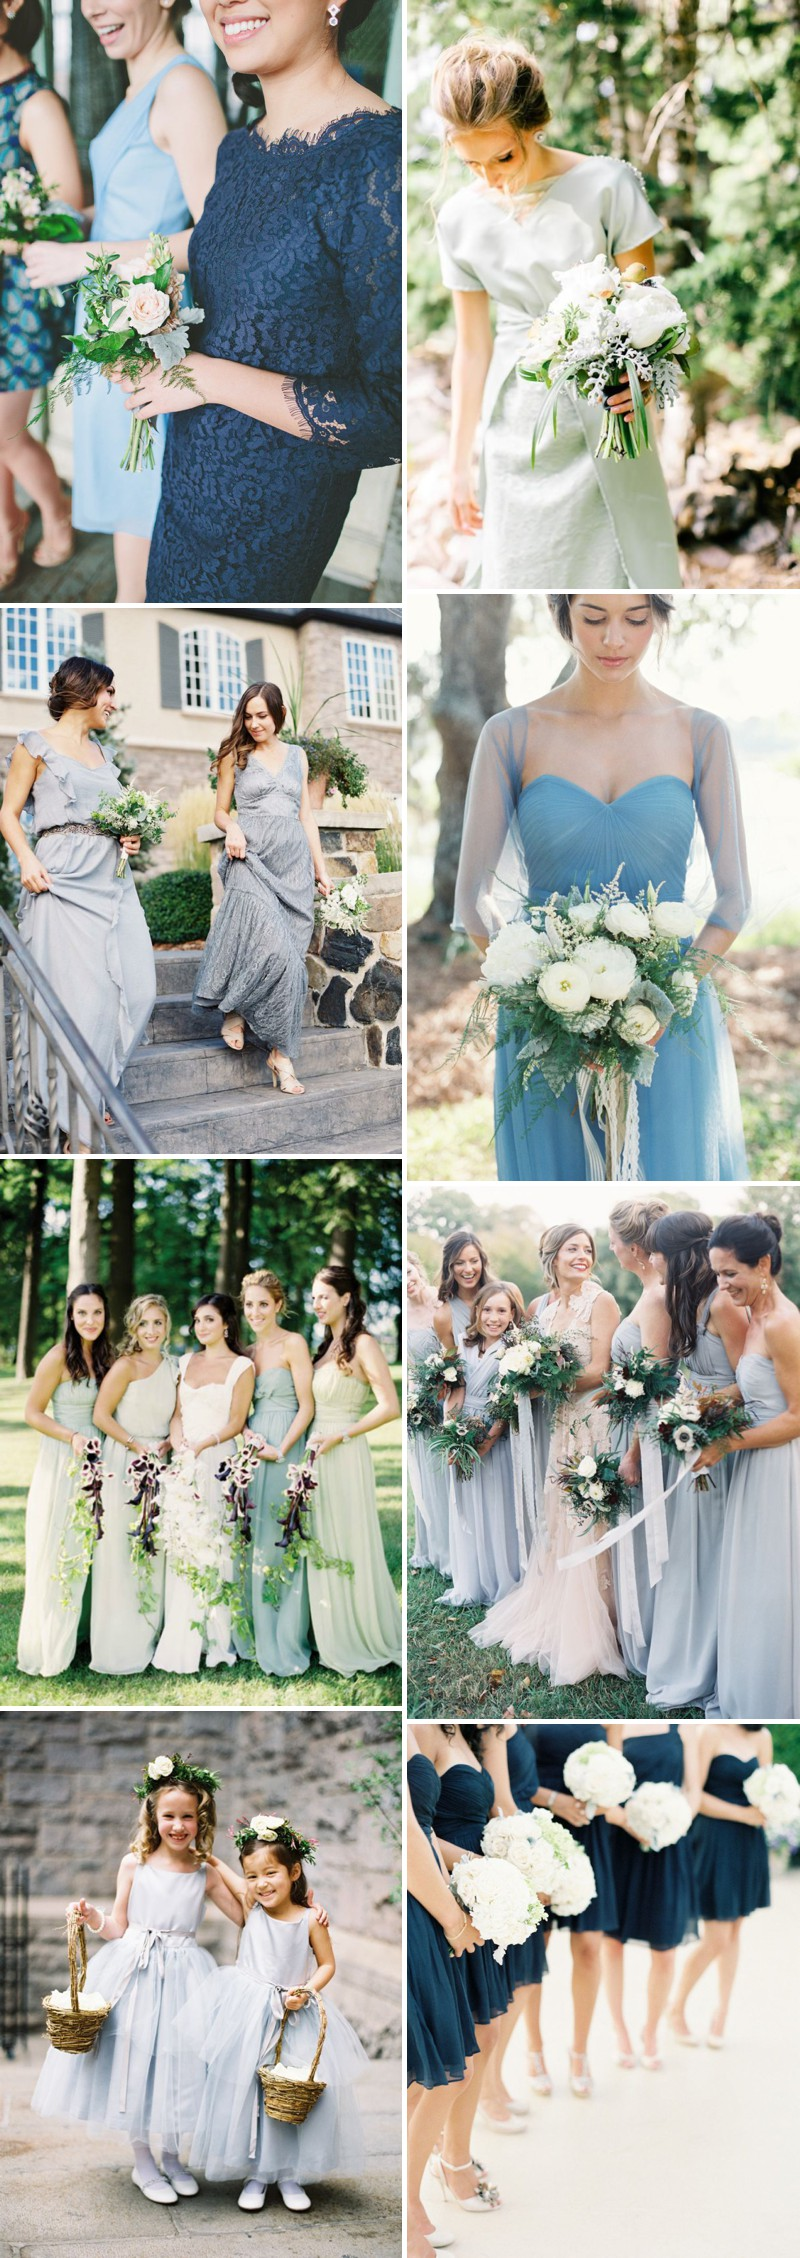 Four Beautiful Bridesmaid Trends For 2014 Including Metallics Neutrals Blue and Black Colour Palettes. 0001 Four Beautiful Bridesmaid Trends.